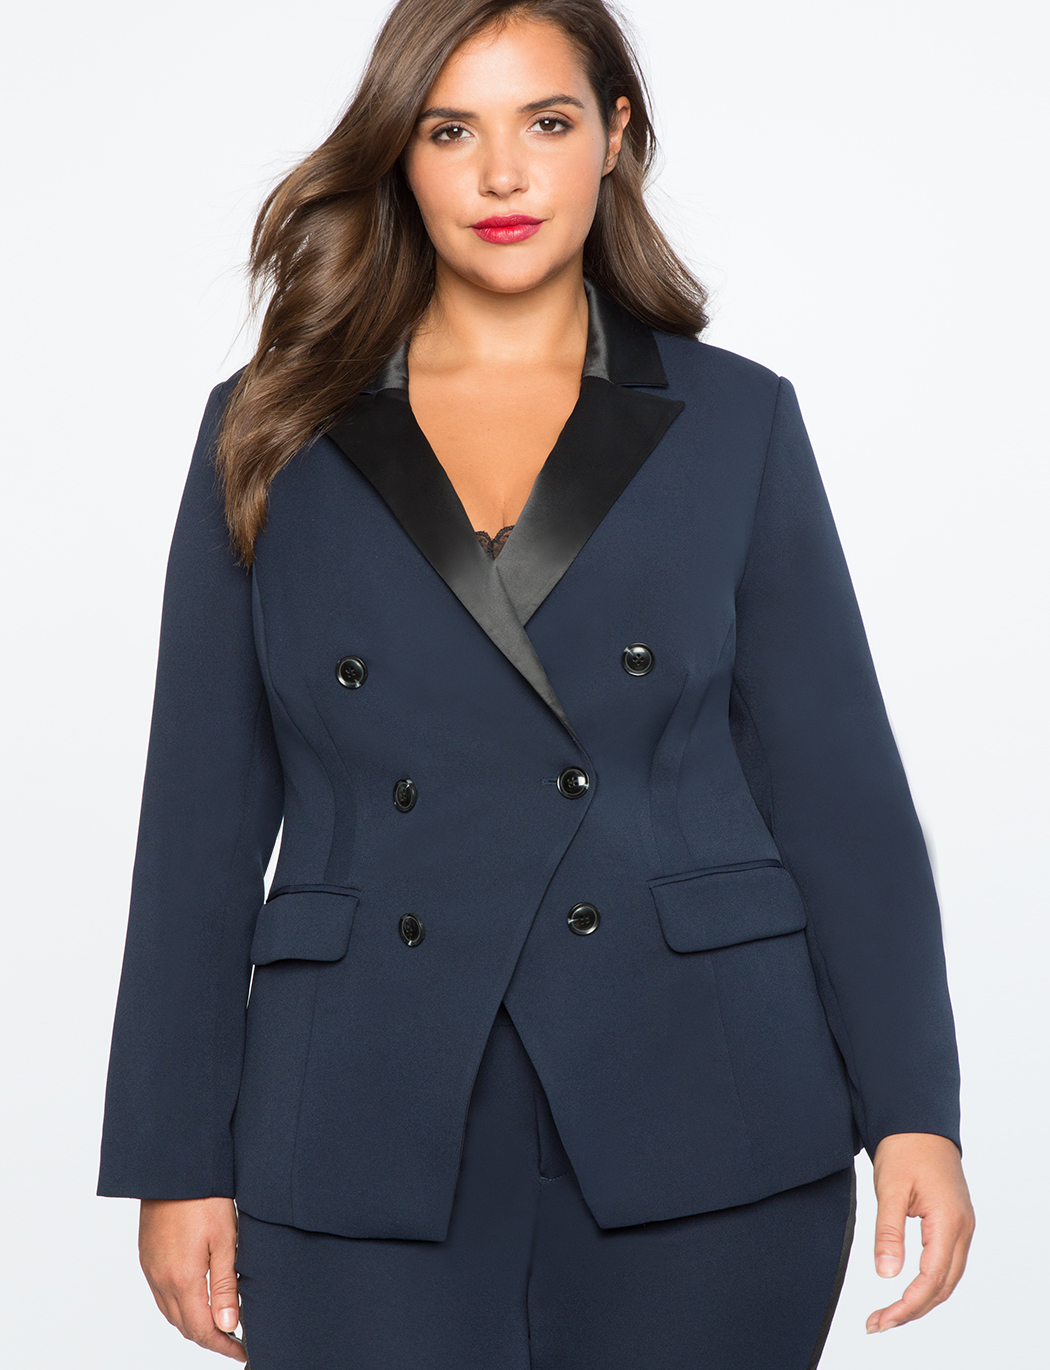 Satin Collar Double Breasted Blazer